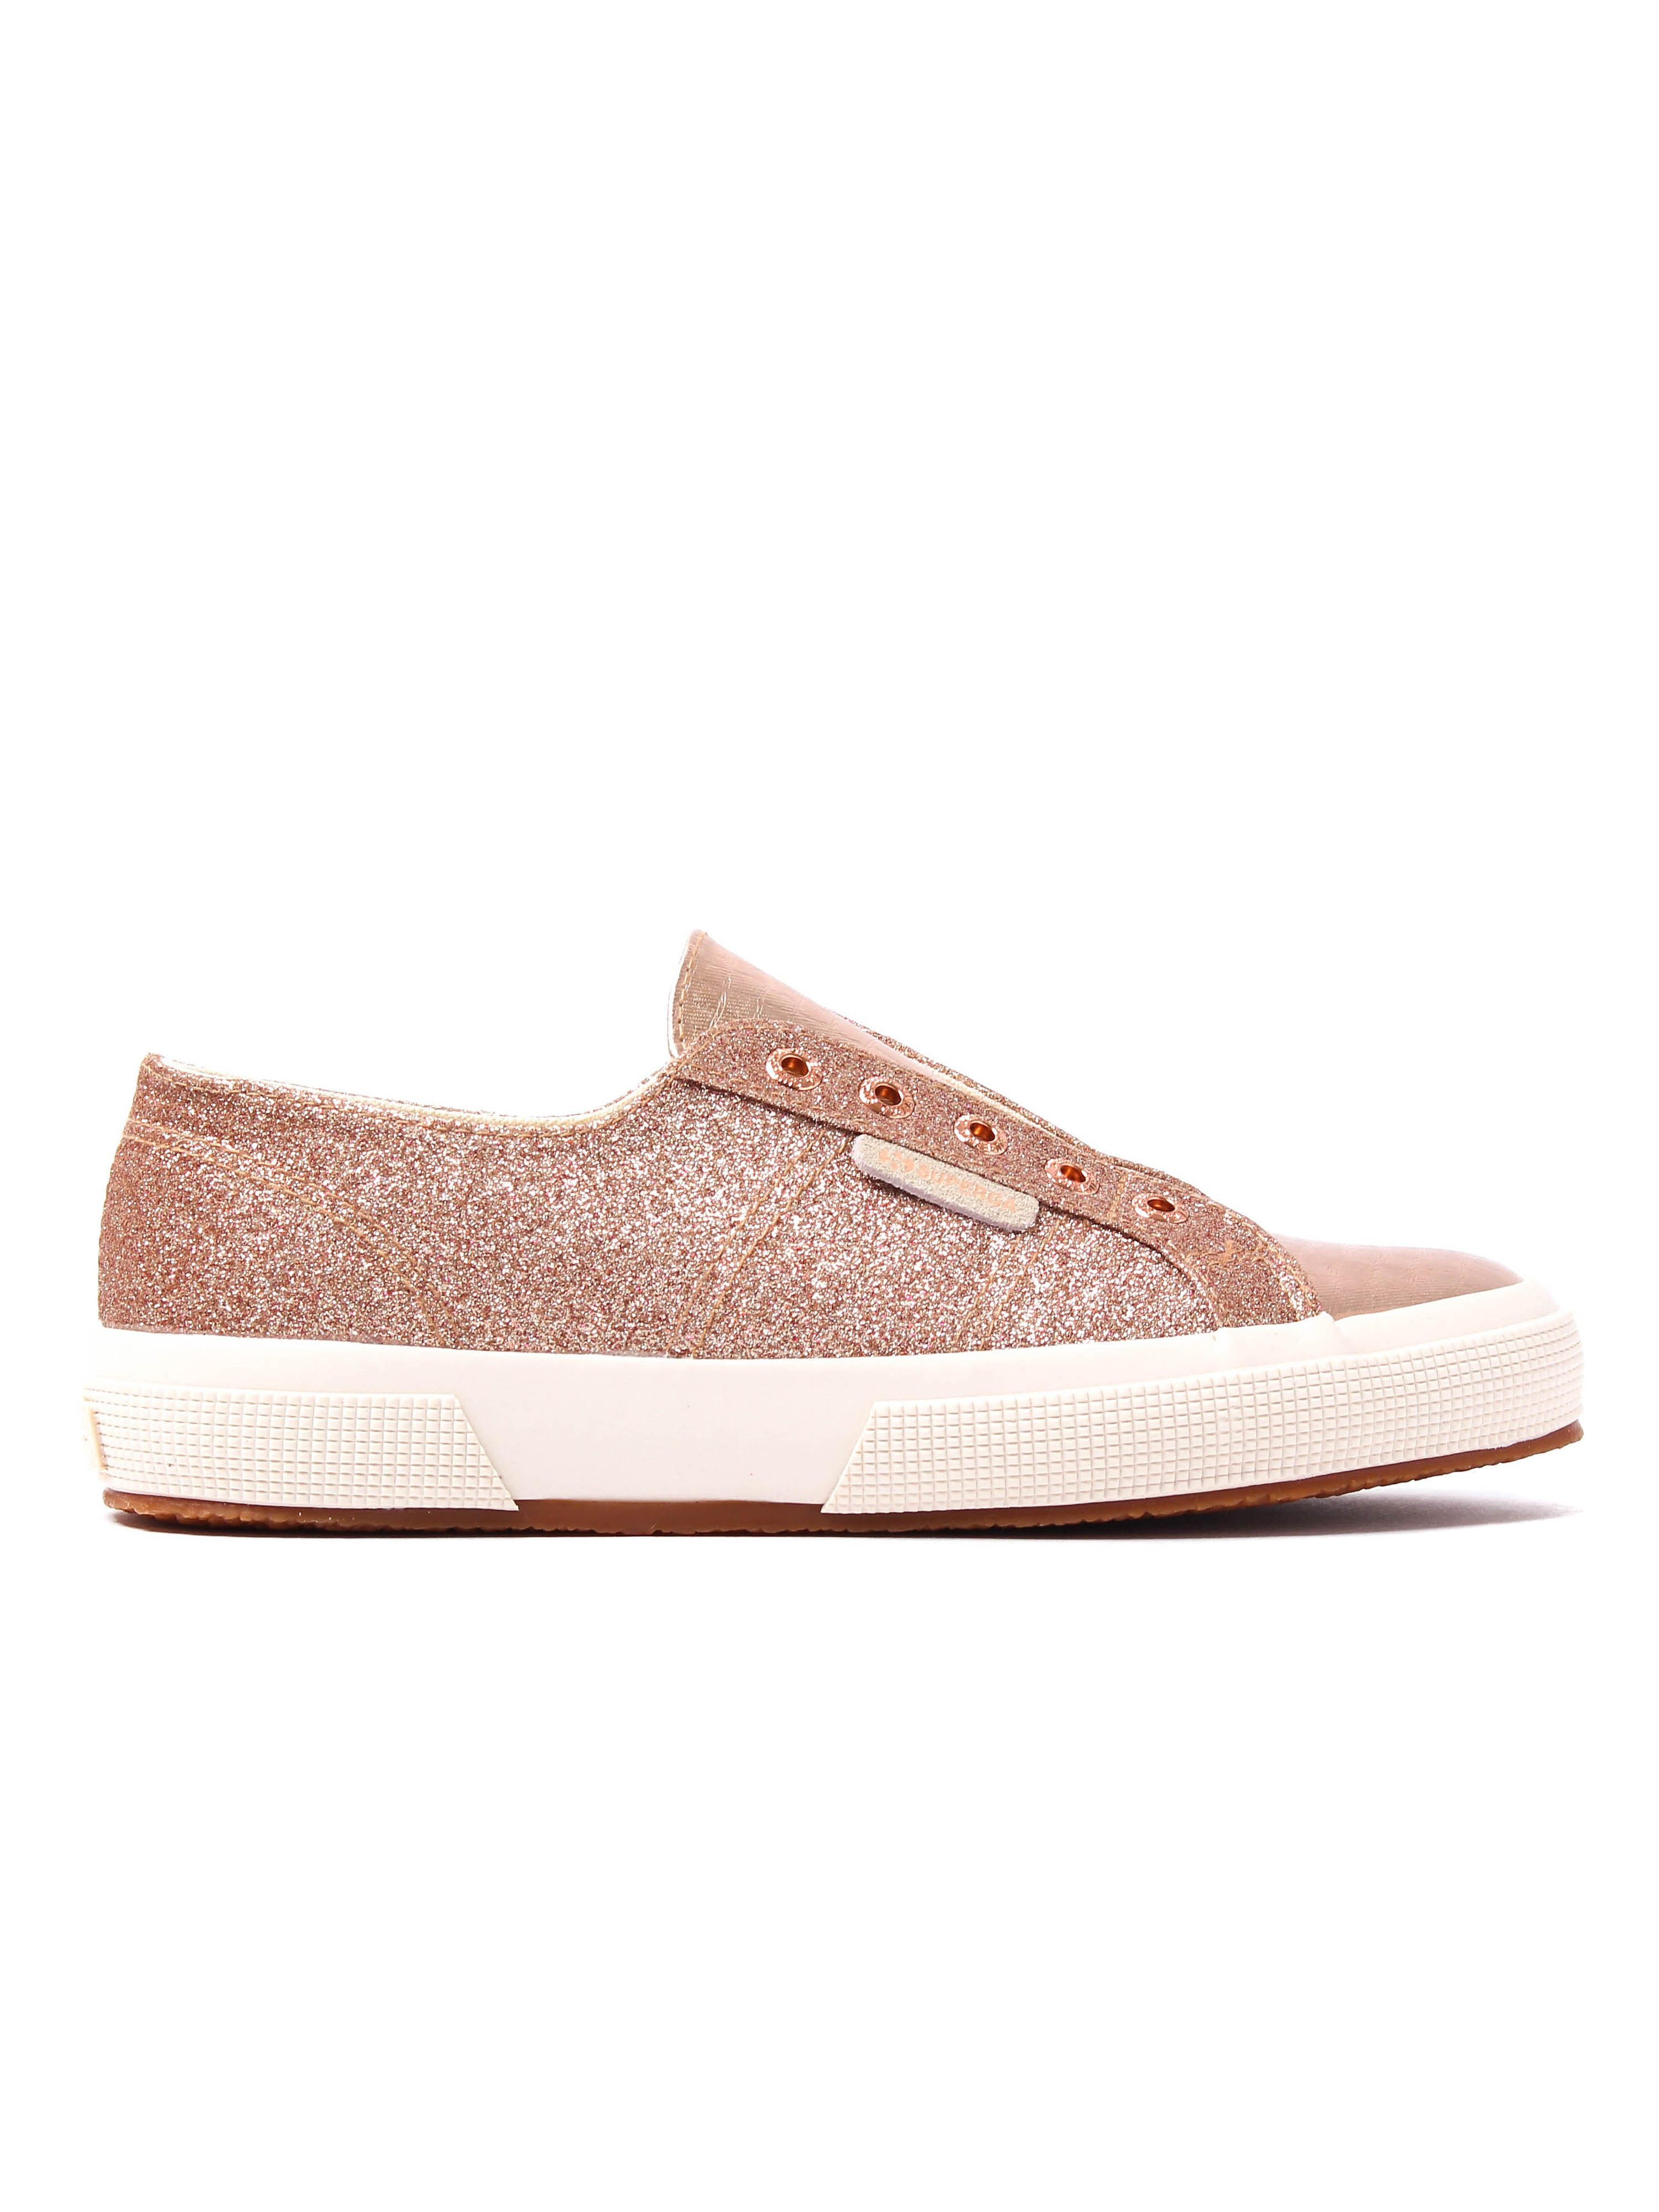 Superga Women's 2750 Microglitter Trainers - Rose Gold